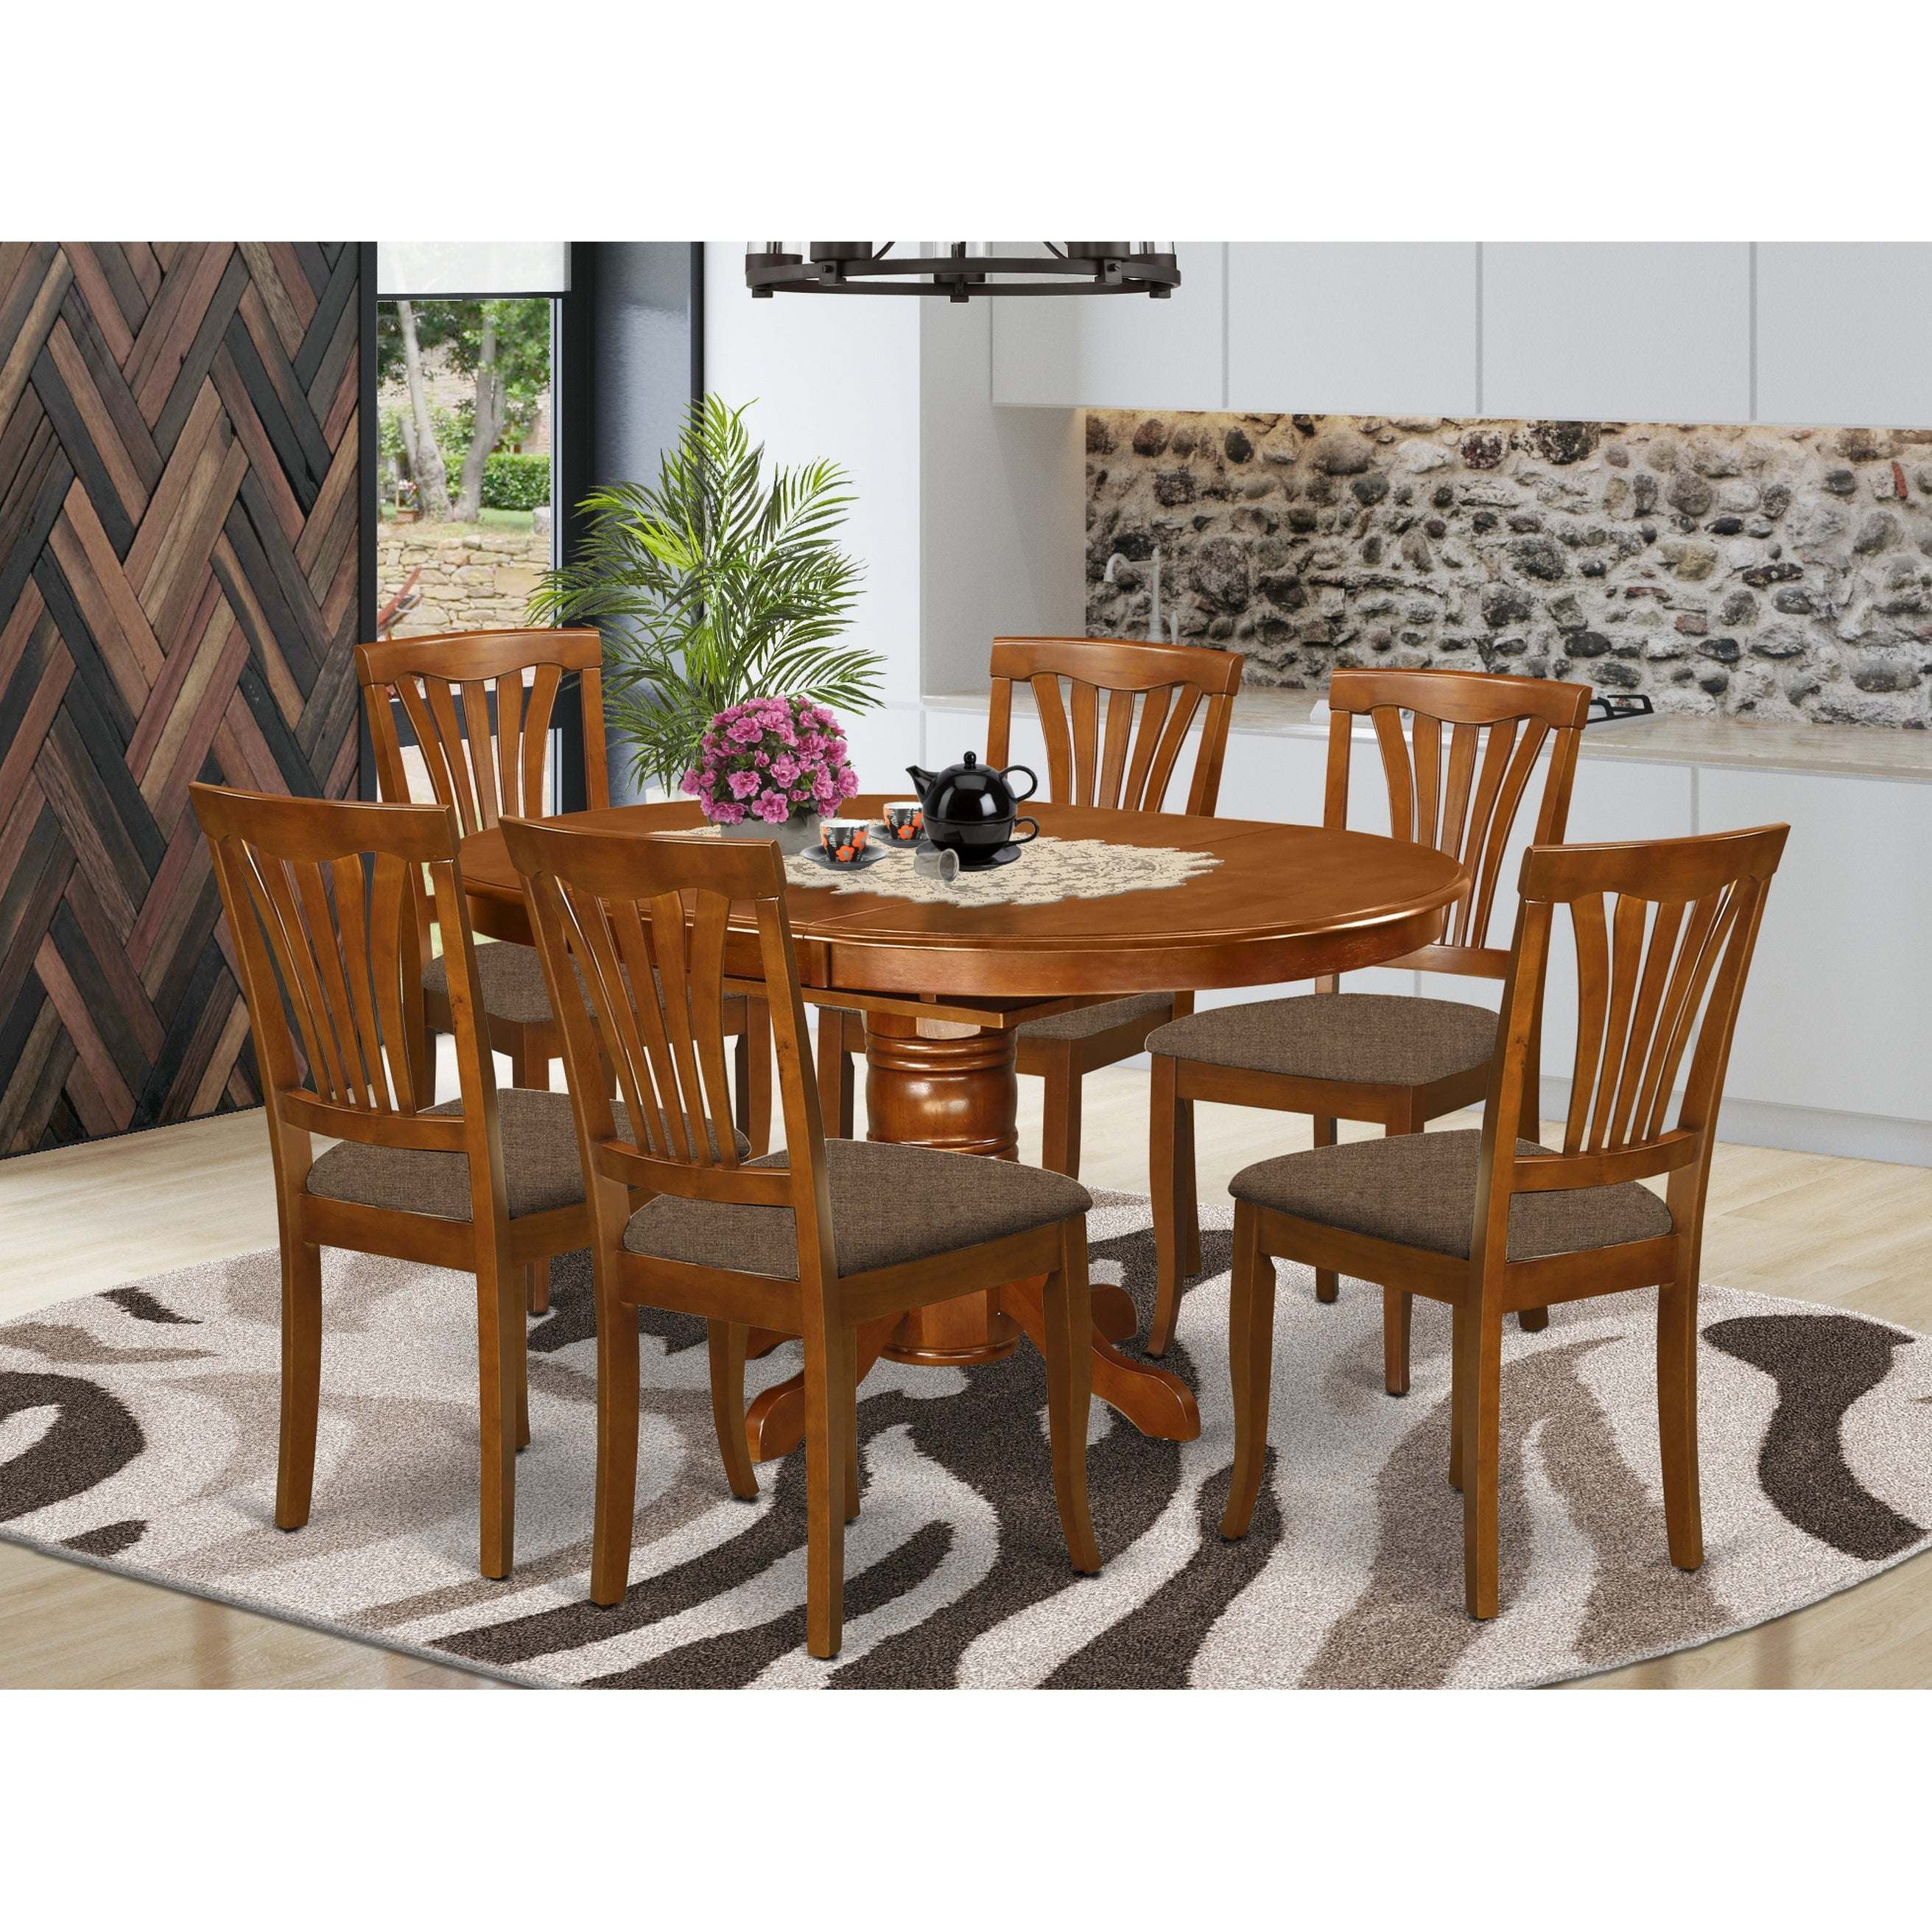 Cucina Letters Kitchen Decor, Shop Black Friday Deals On 7 Piece Oval Dining Room Table With Leaf And 6 Dining Chairs Overstock 10296404 Faux Leather